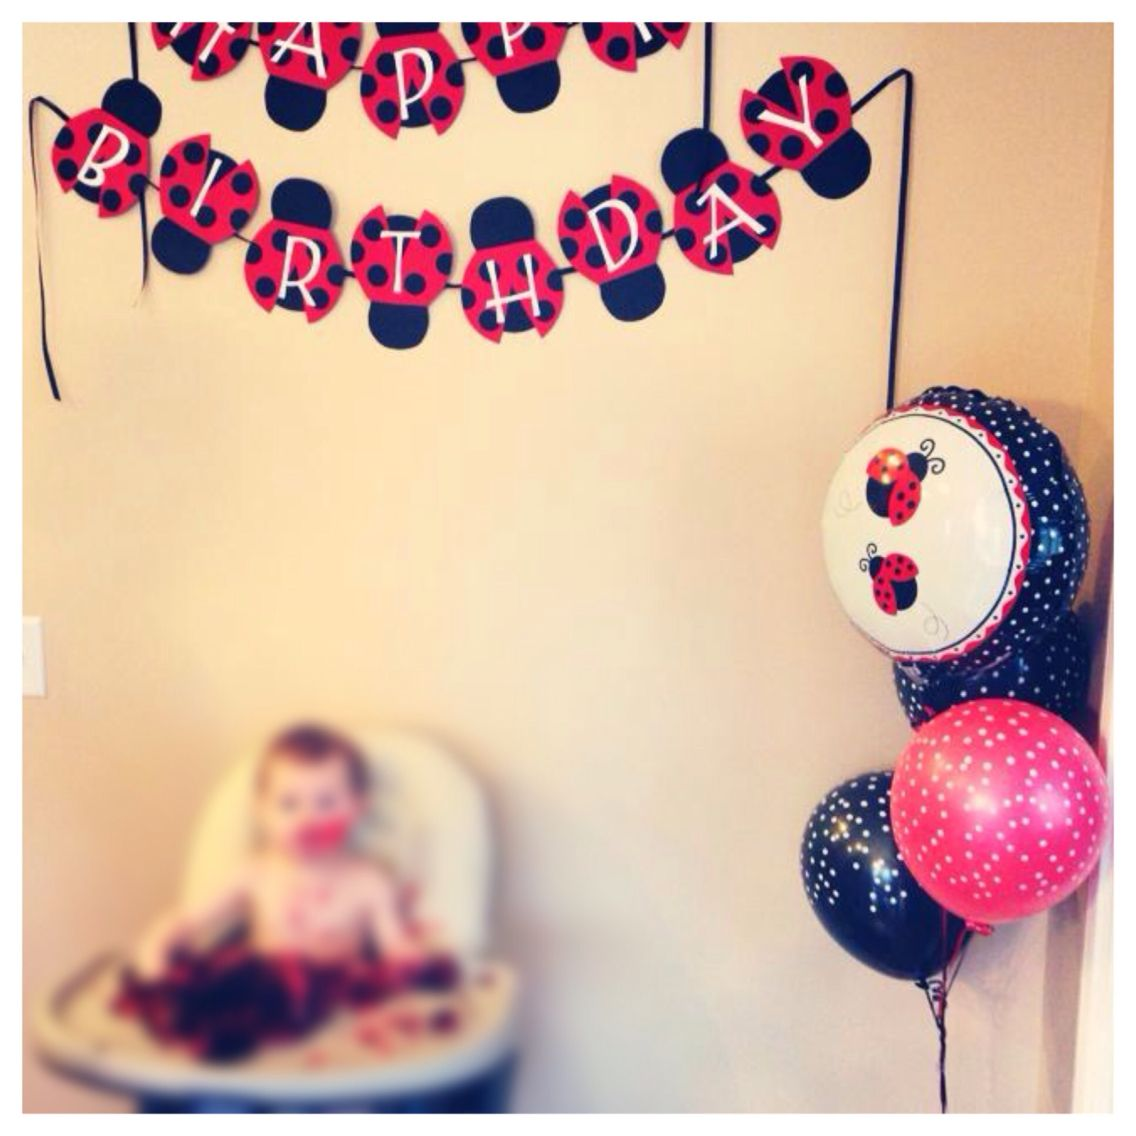 Ladybug birthday banner and balloons